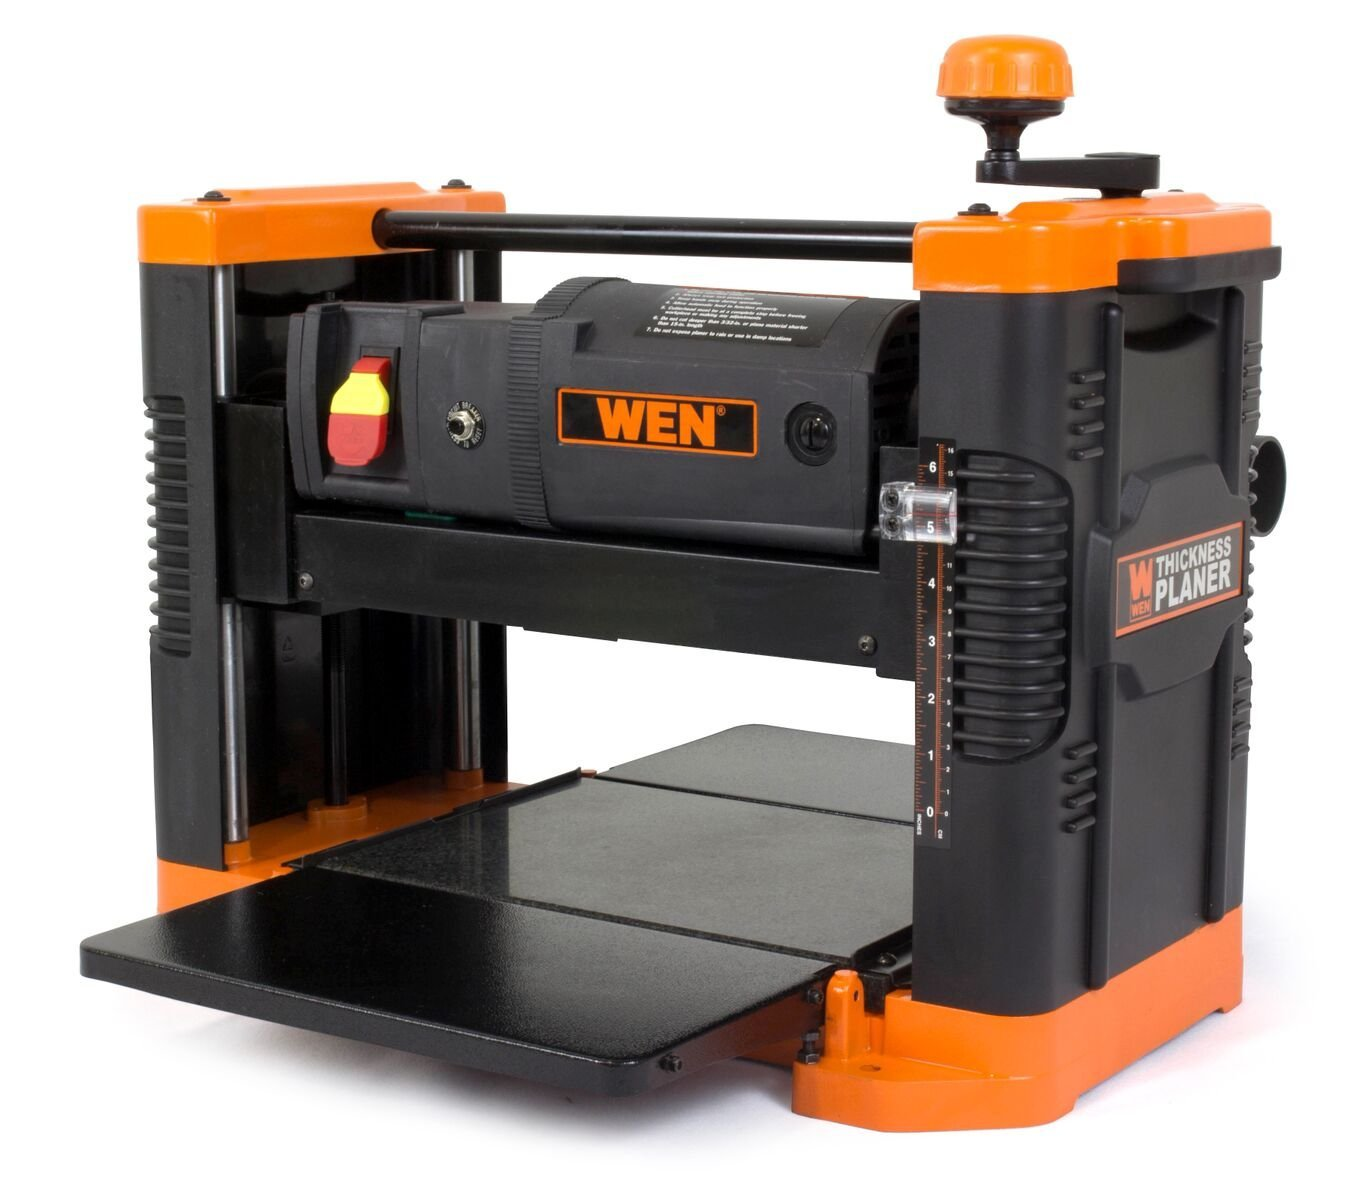 WEN 6550 125-Inch 15A Benchtop Thickness Planer with